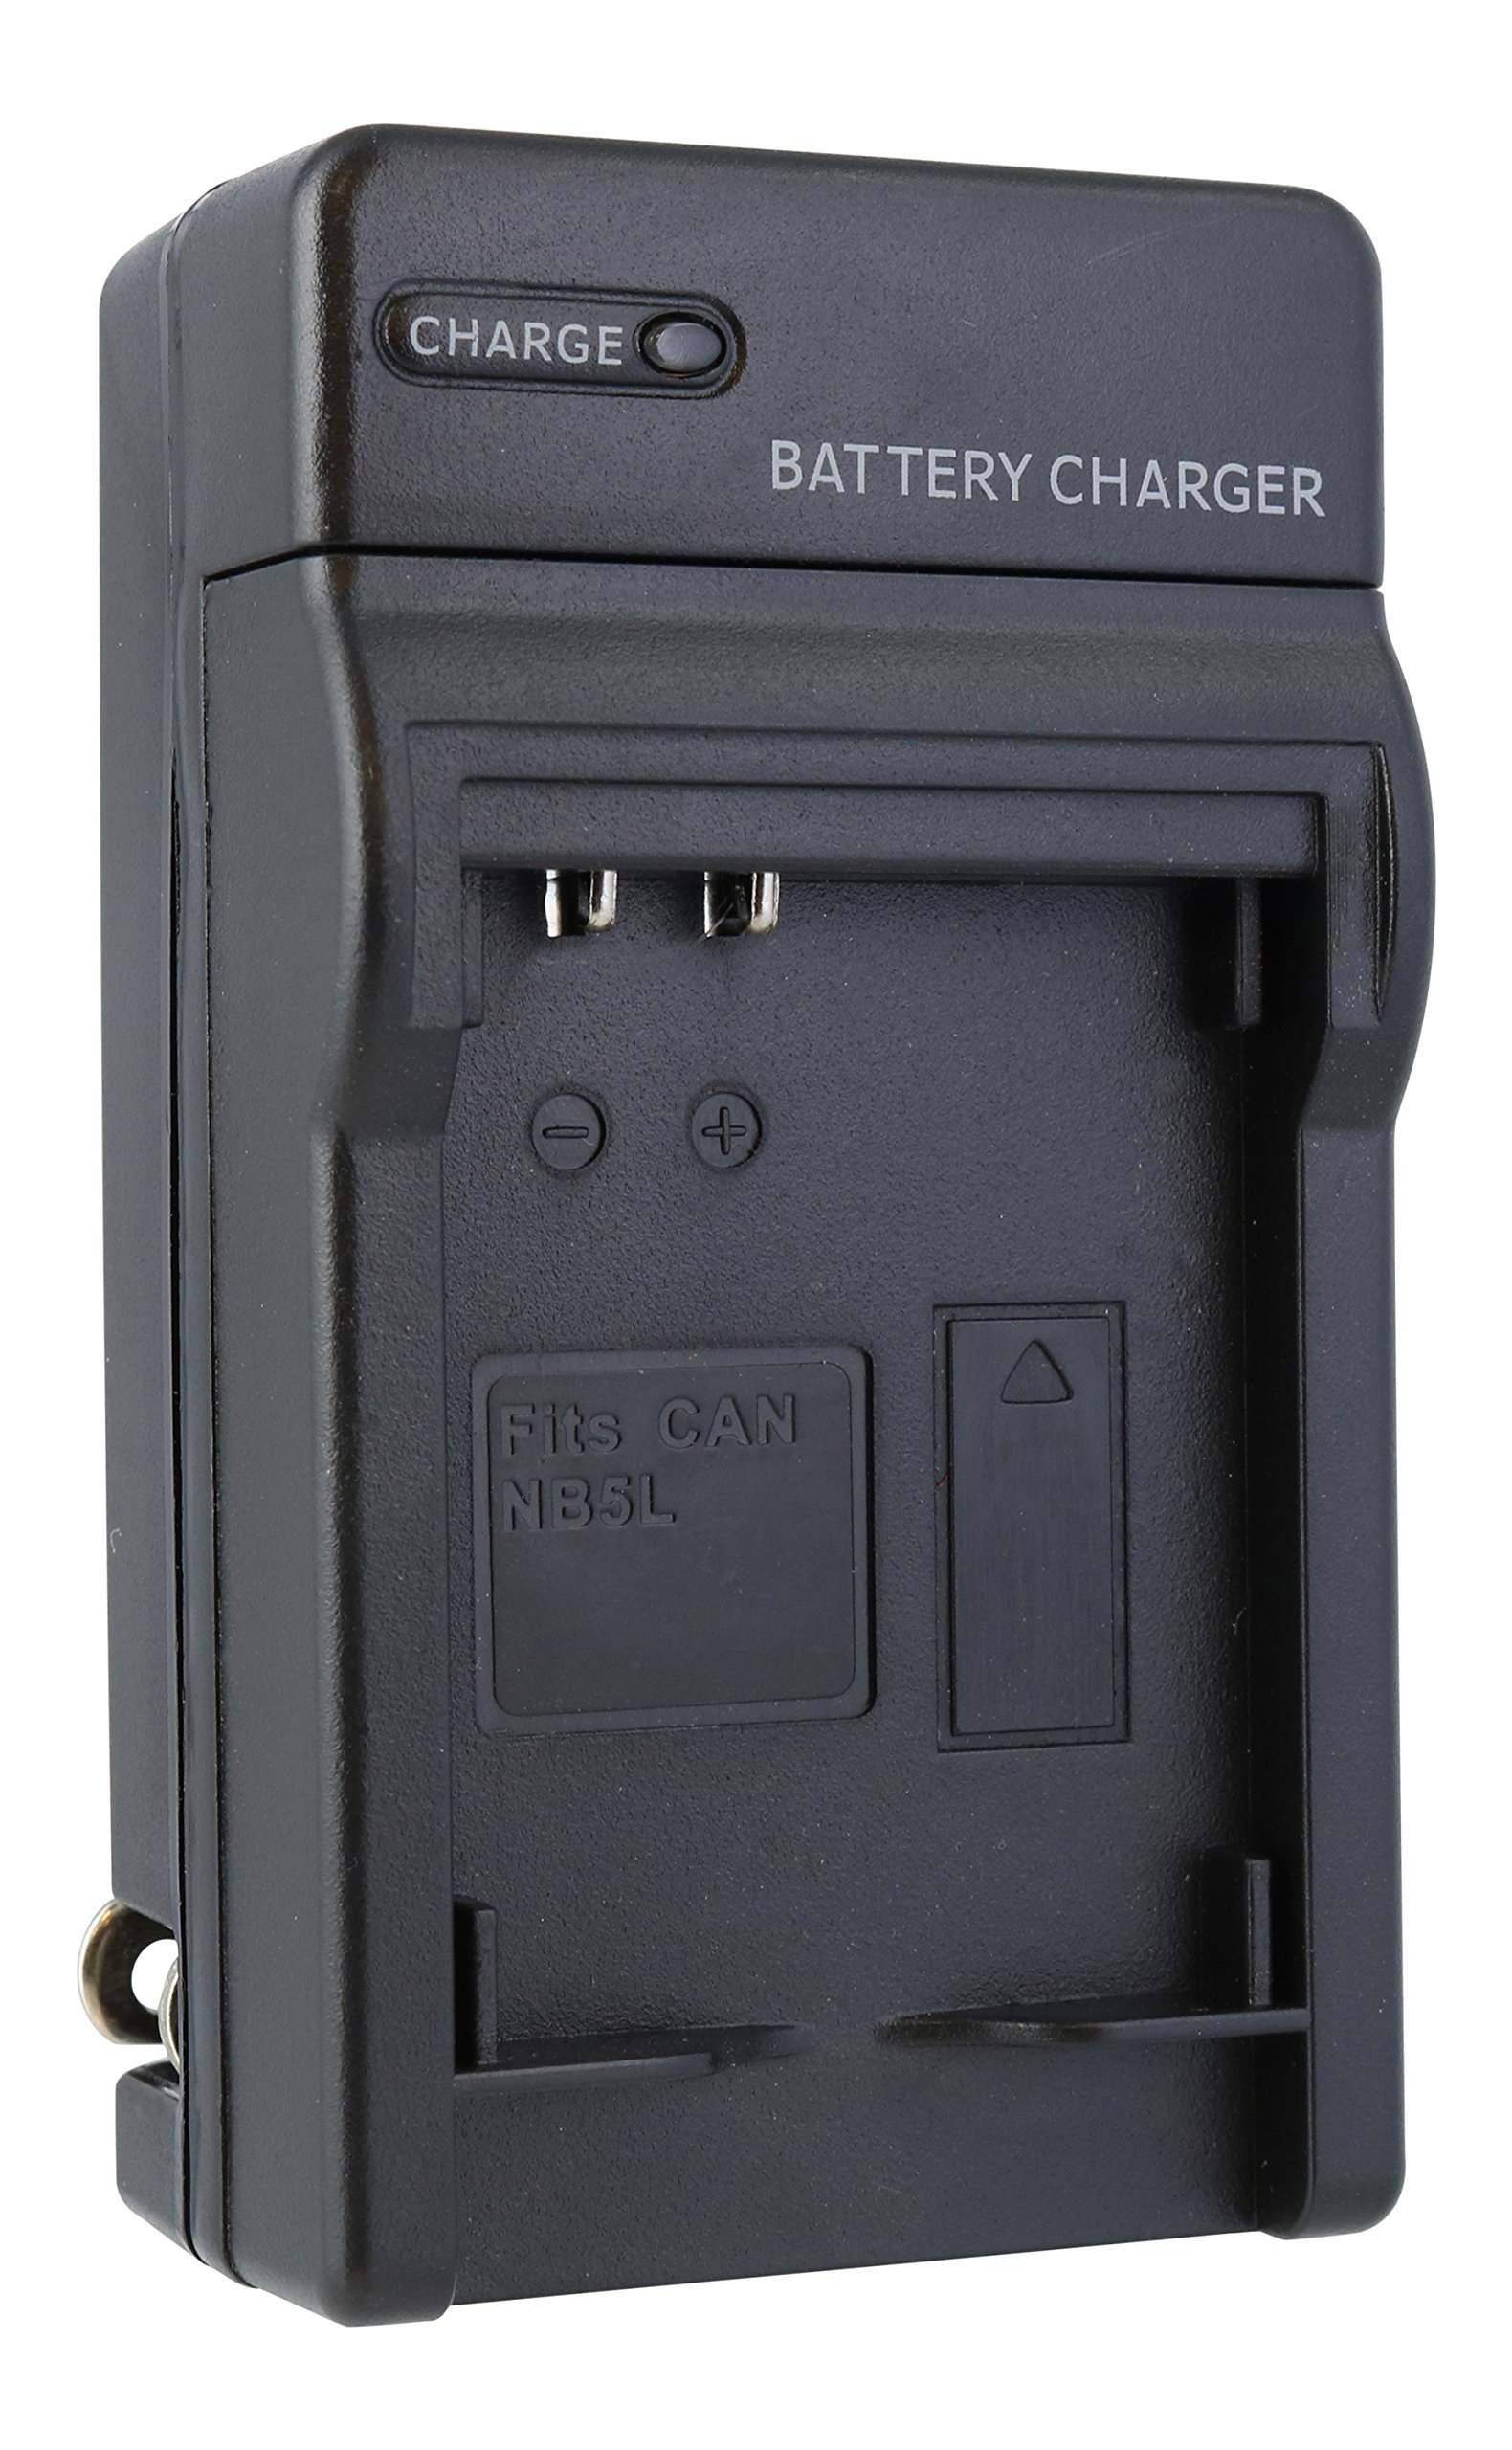 TechFuel Battery Charger Kit for Canon PowerShot SD970 IS Camera - For Home, Car and Travel Use